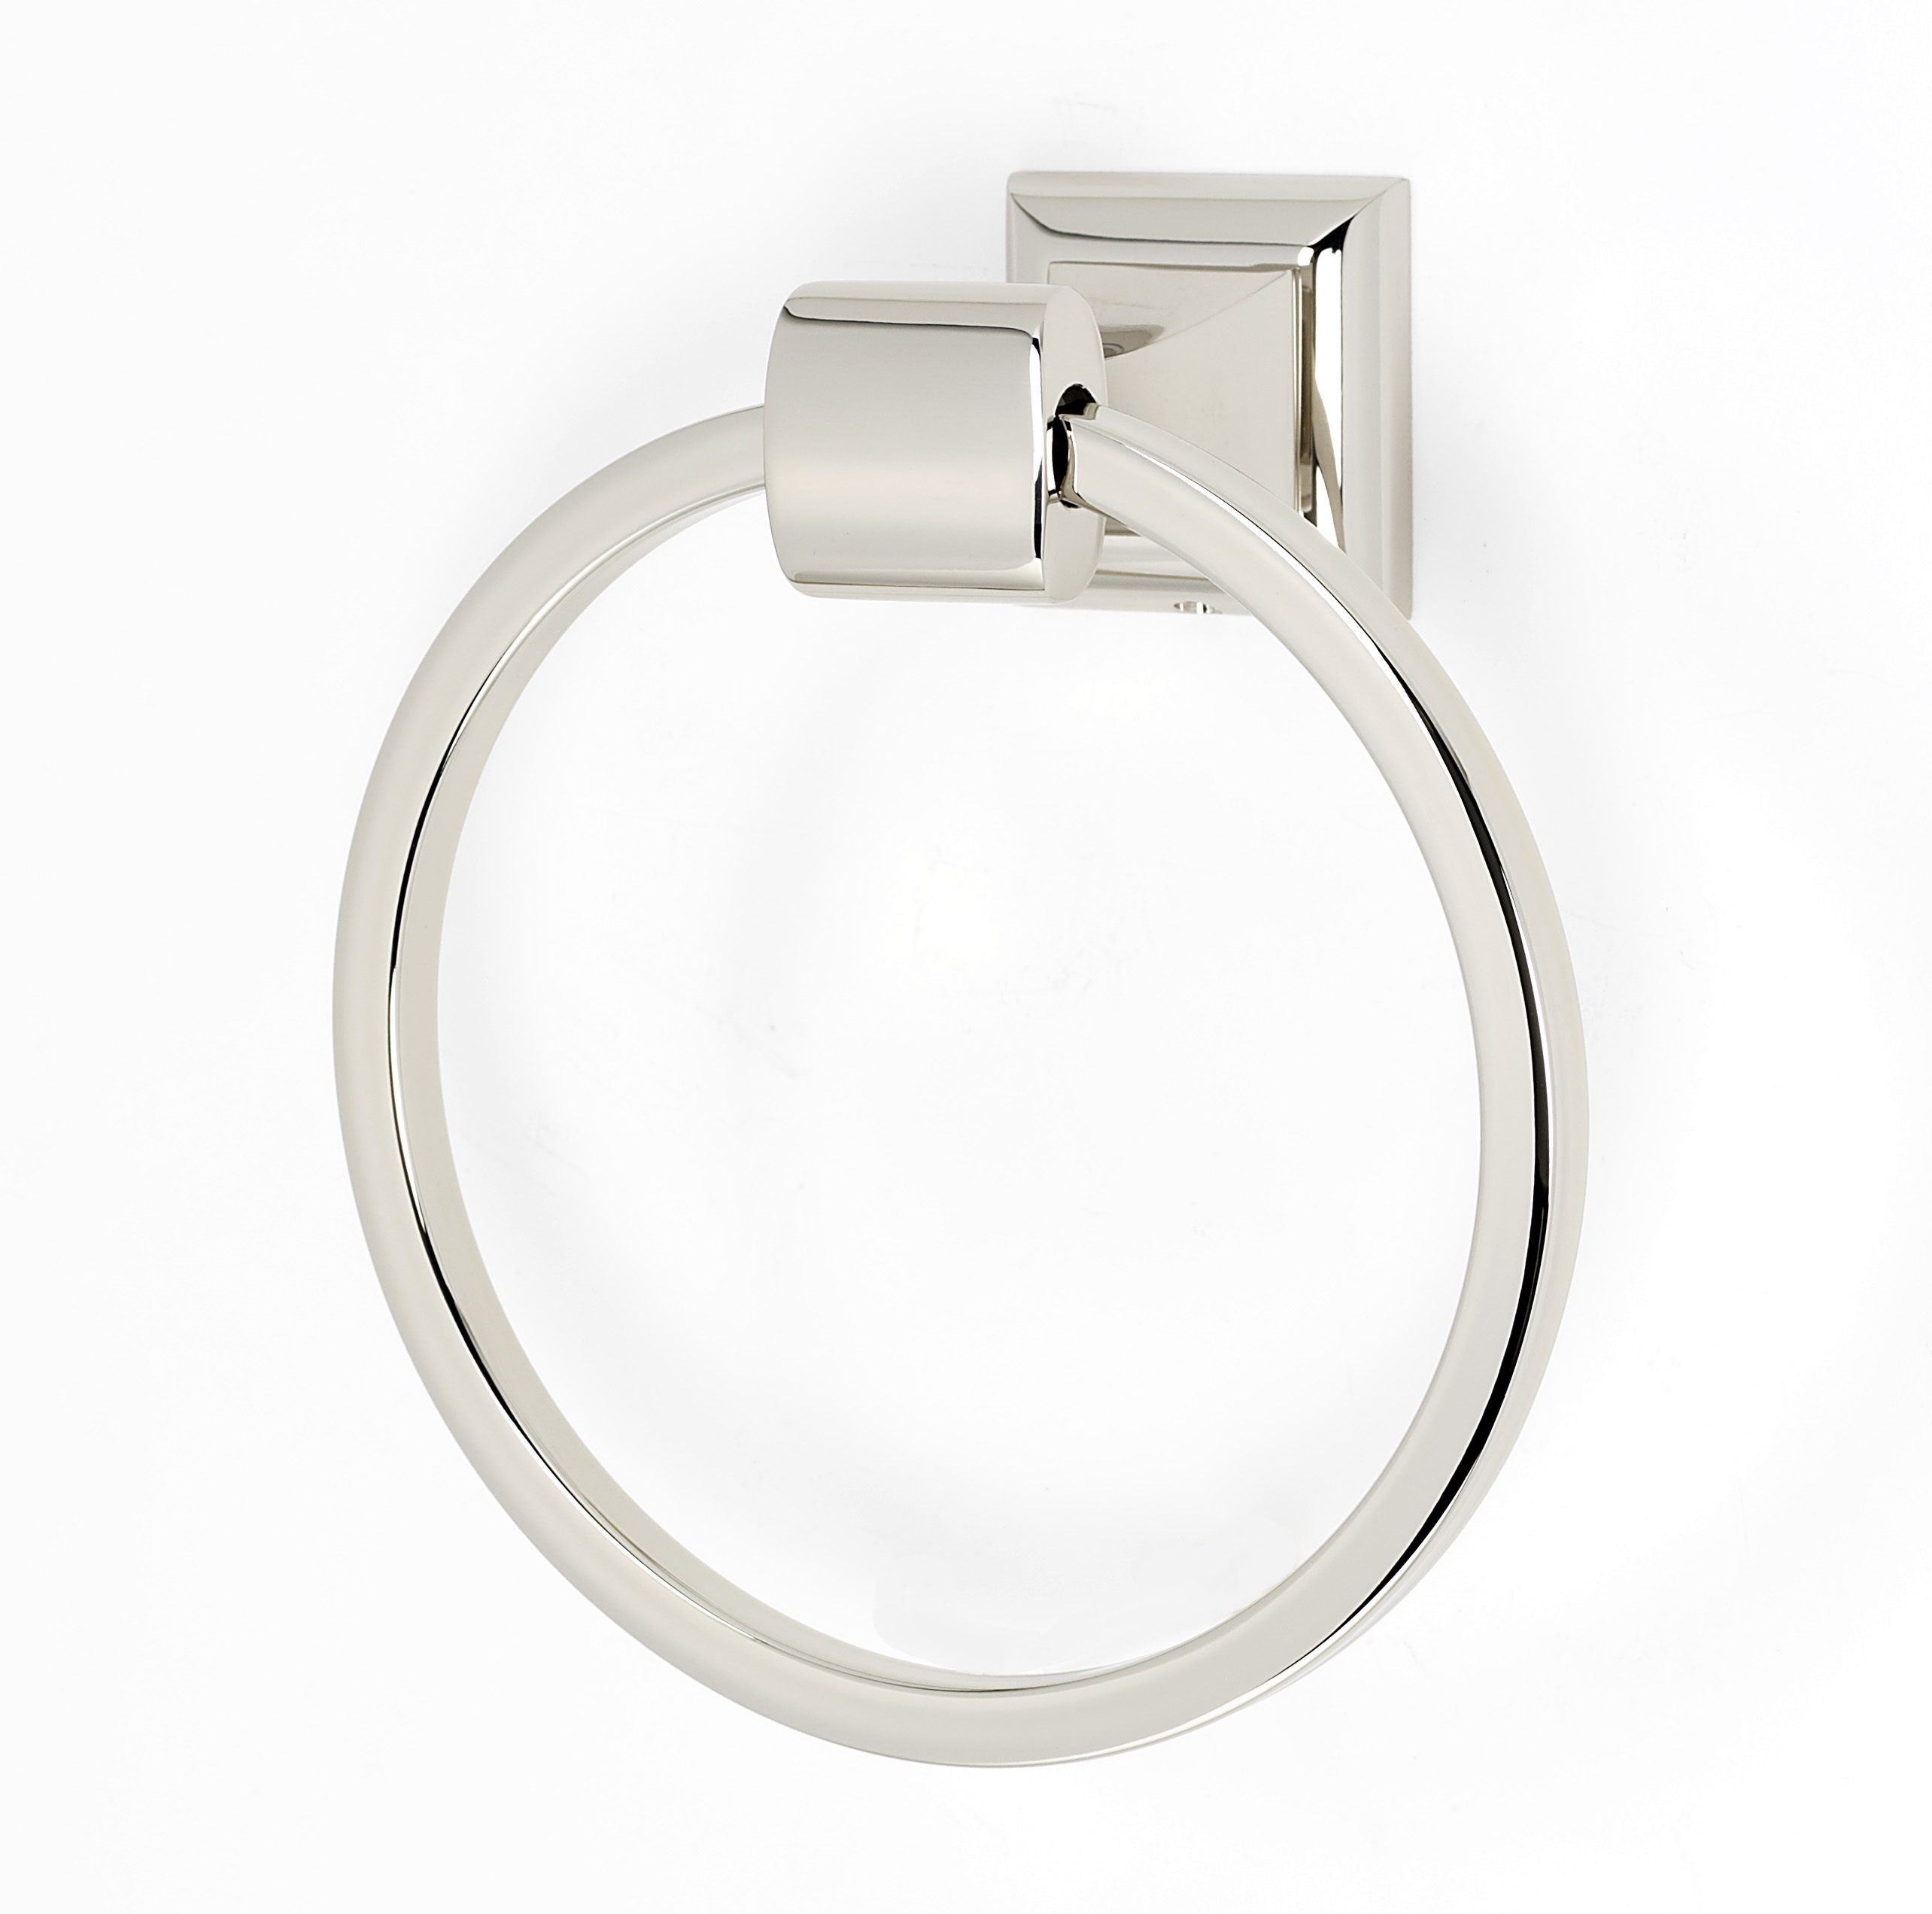 Manhattan Towel Ring A7440 Creations By Alno Inc